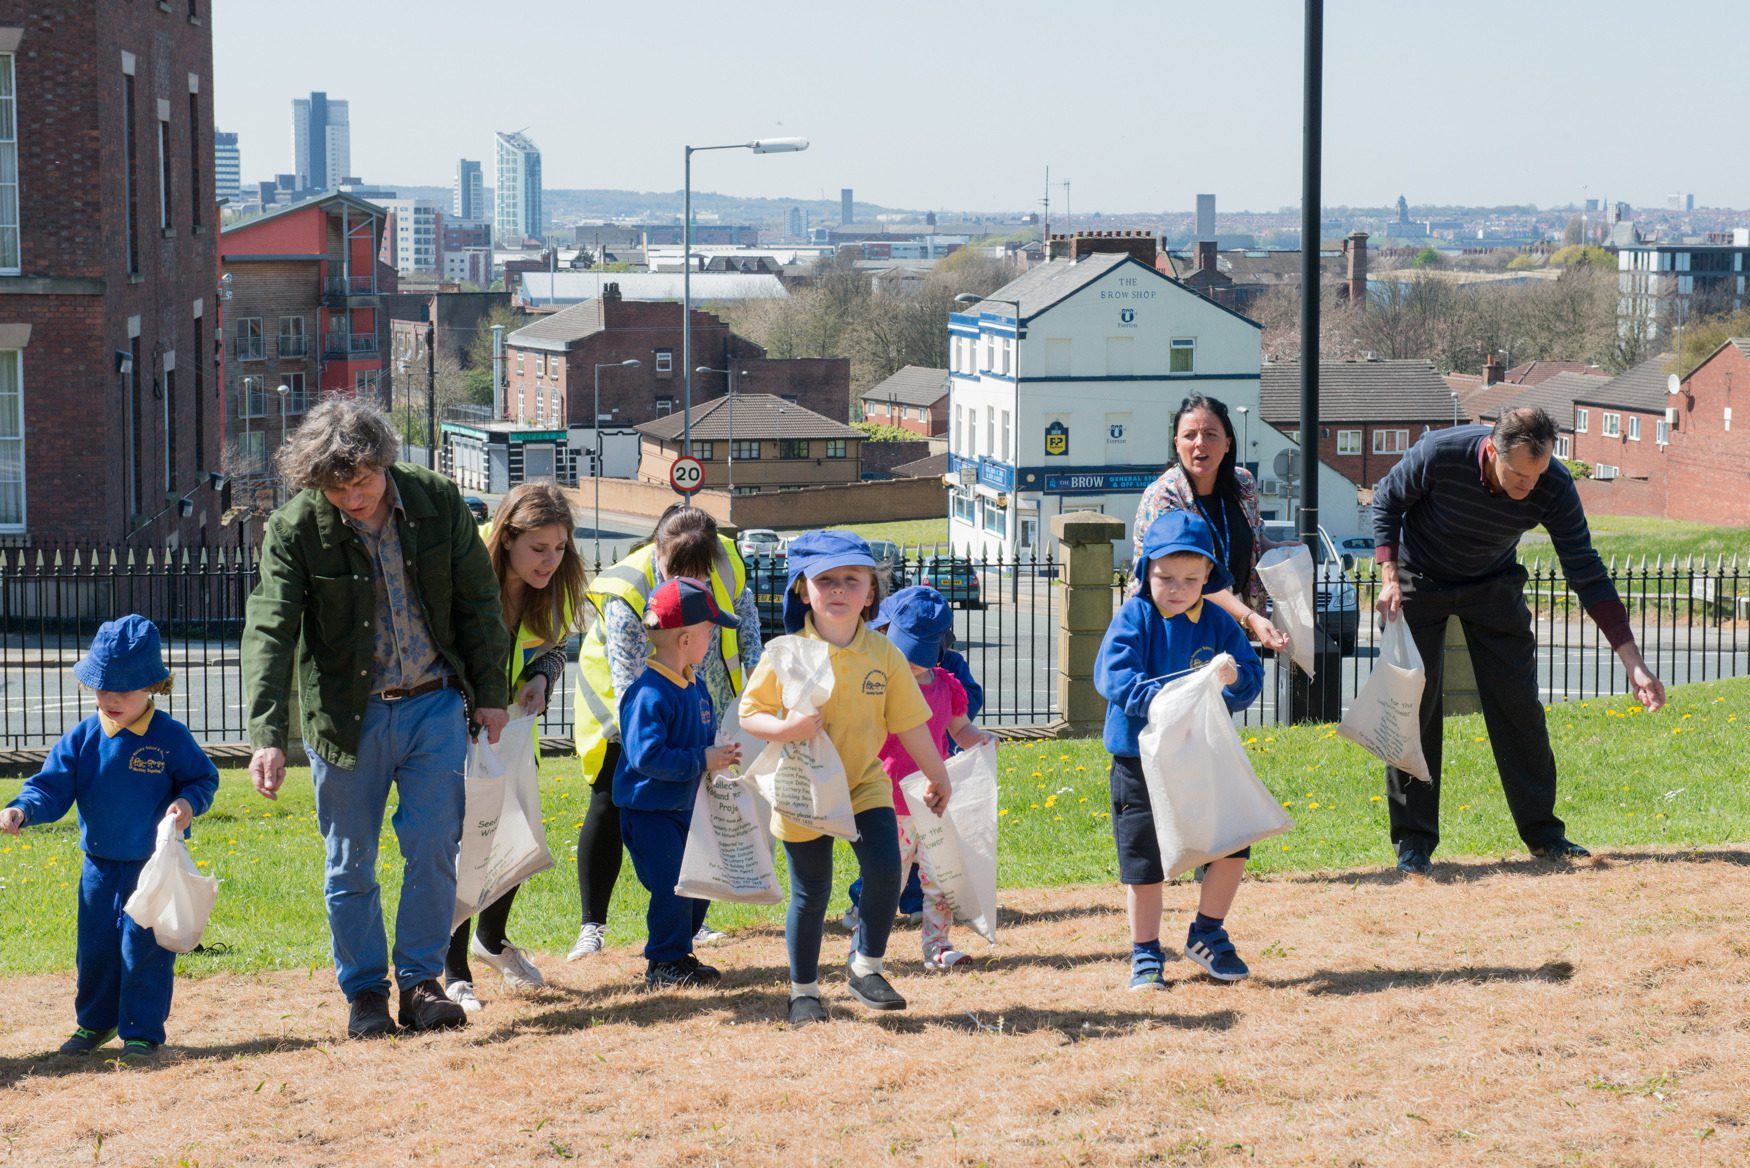 Children and local community members volunteering at The Land Trust's Liverpool site, Everton Park. Sowing seed for a wildflower meadow to improve their local green space.